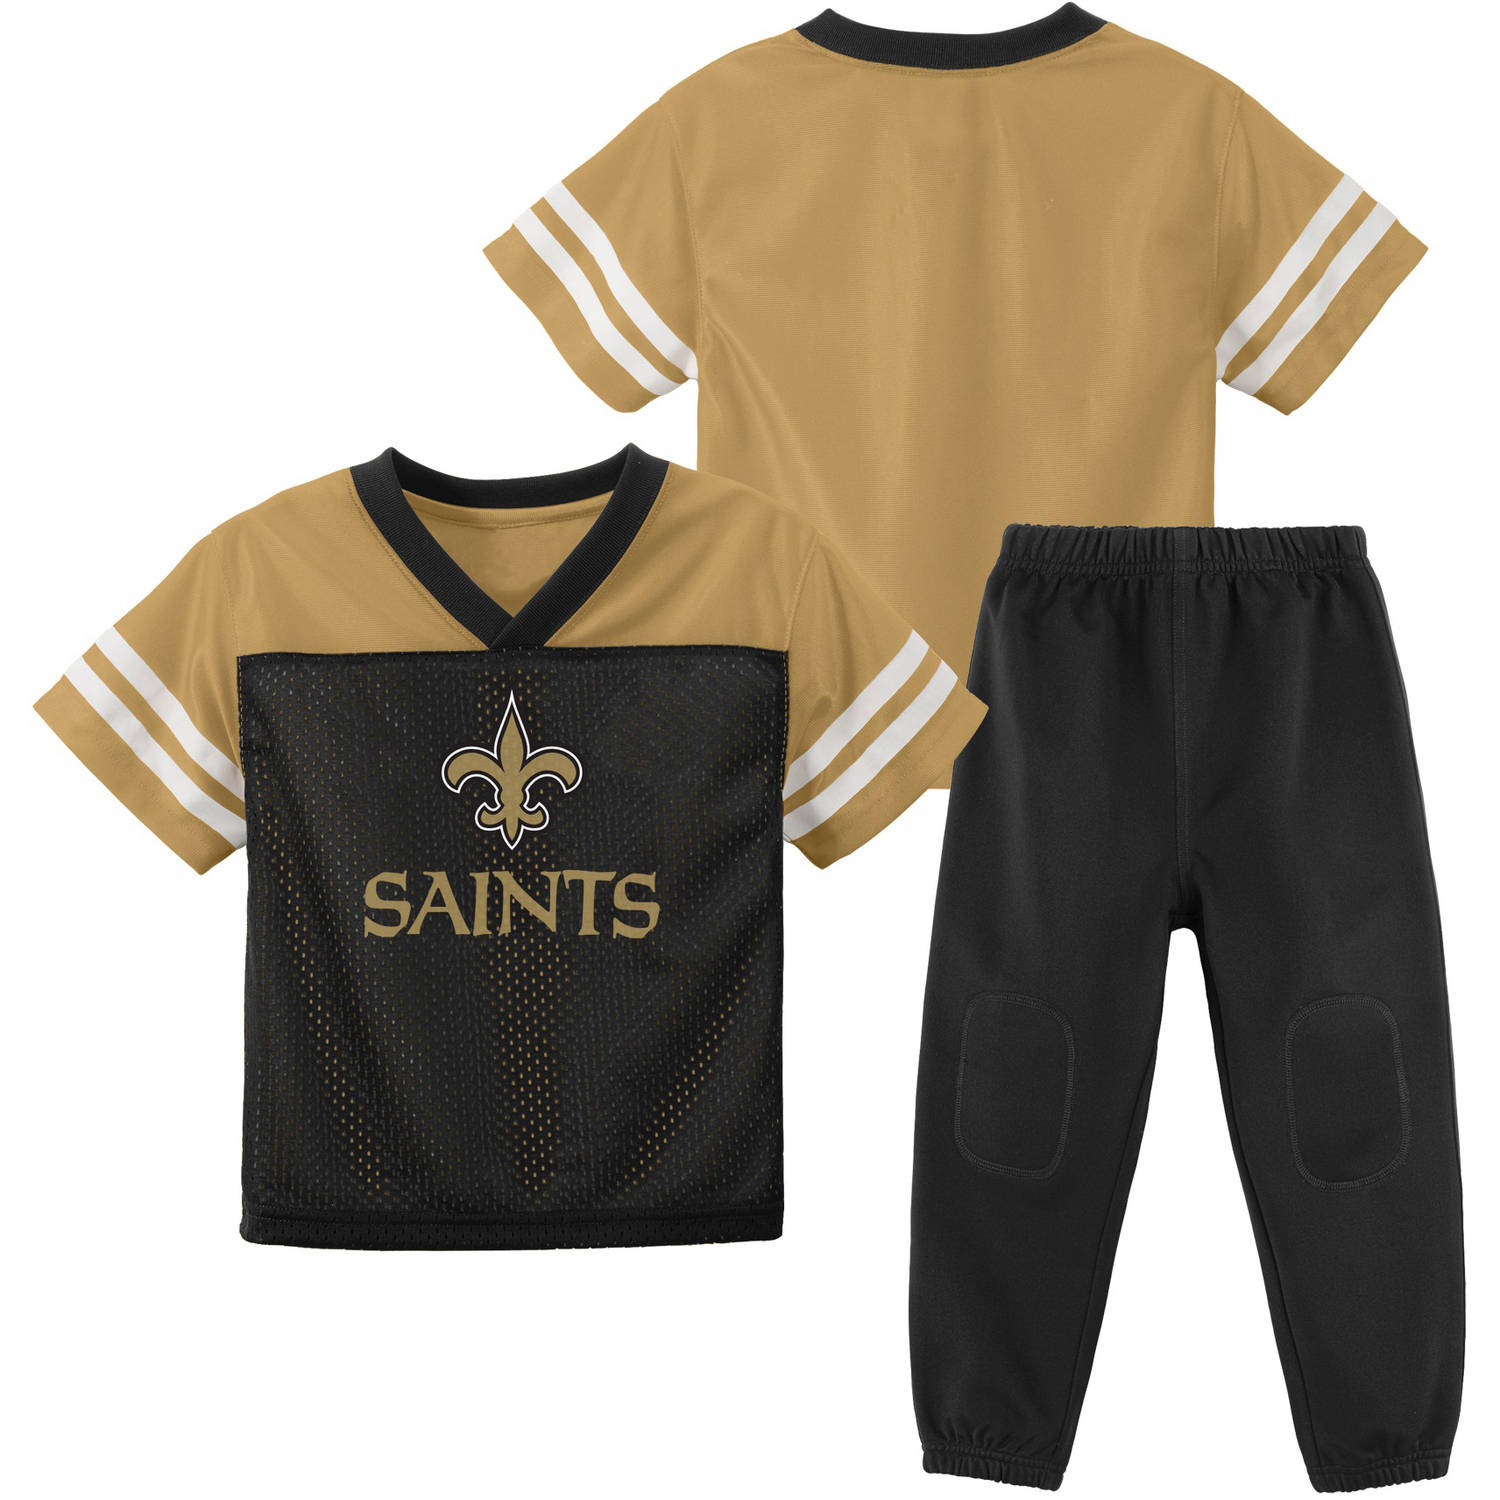 NFL New Orleans Saints Toddler Short Sleeve Top and Pant Set